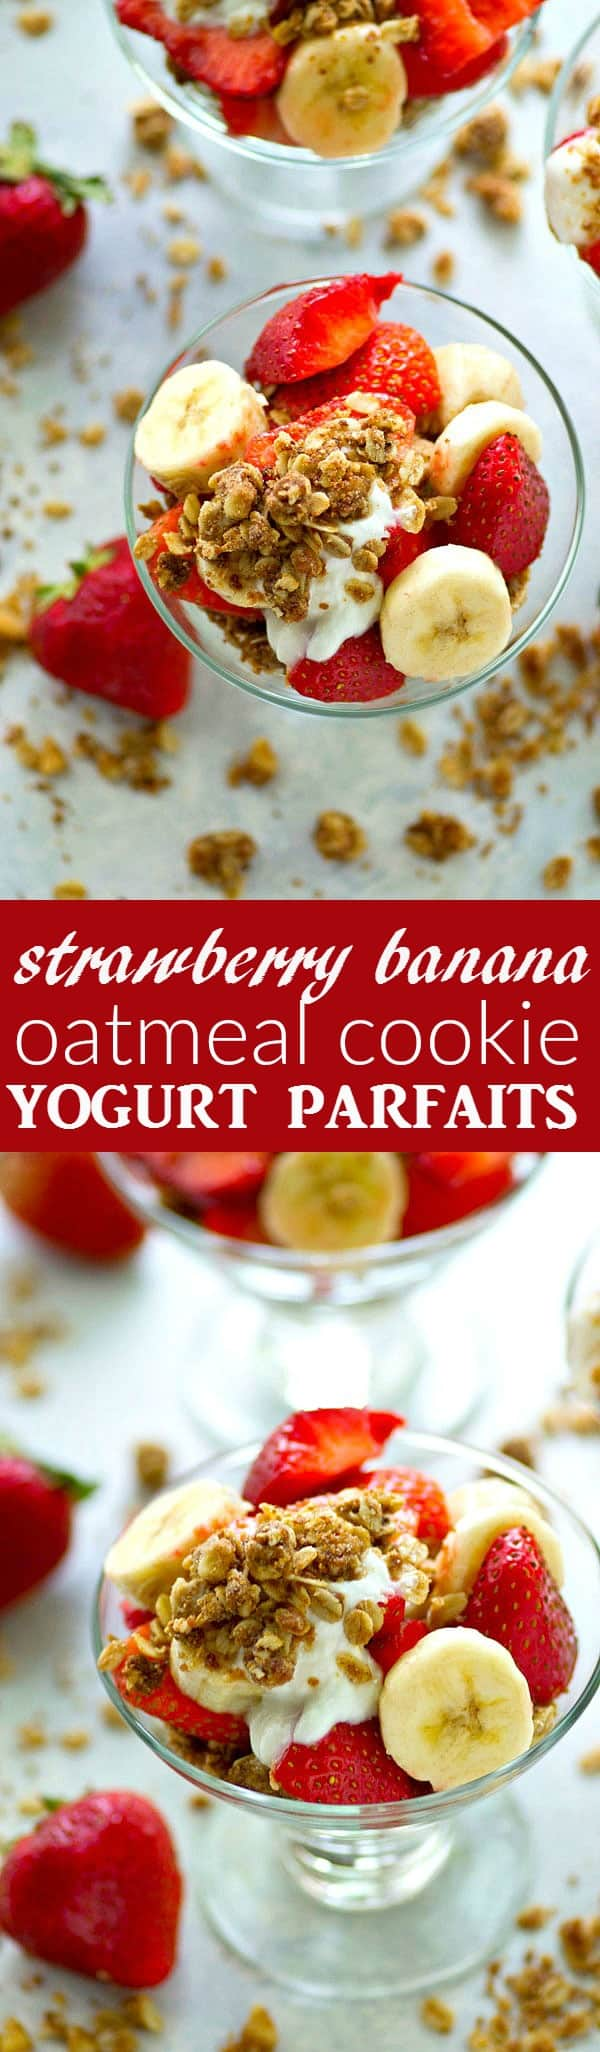 Piled with fresh strawberries and bananas, vanilla yogurt, and an oatmeal cookie crumble, these yogurt parfaits are the EASIEST summer breakfast to throw together!